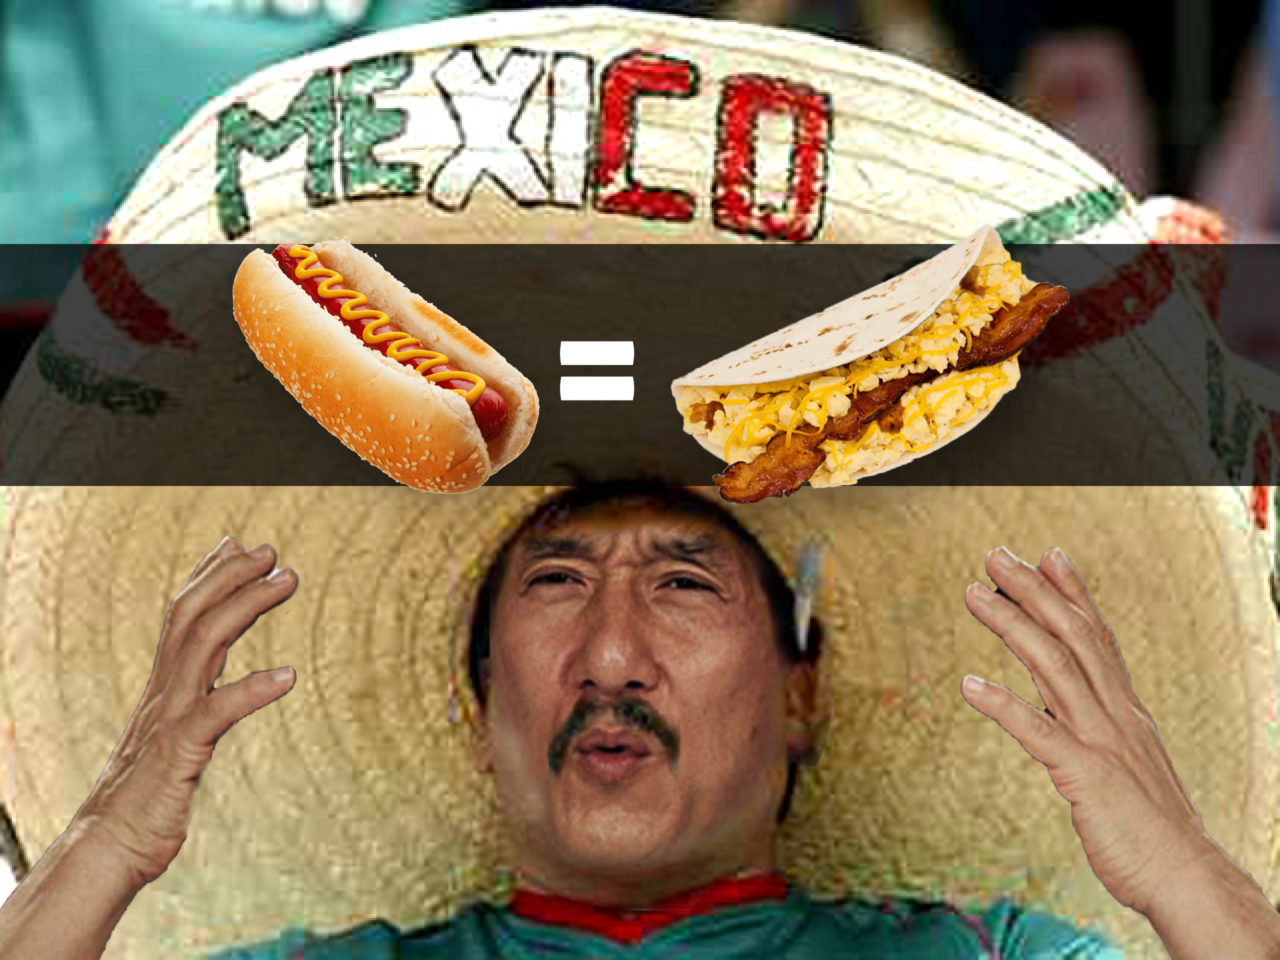 Are Hot Dogs Actually Tacos? 1